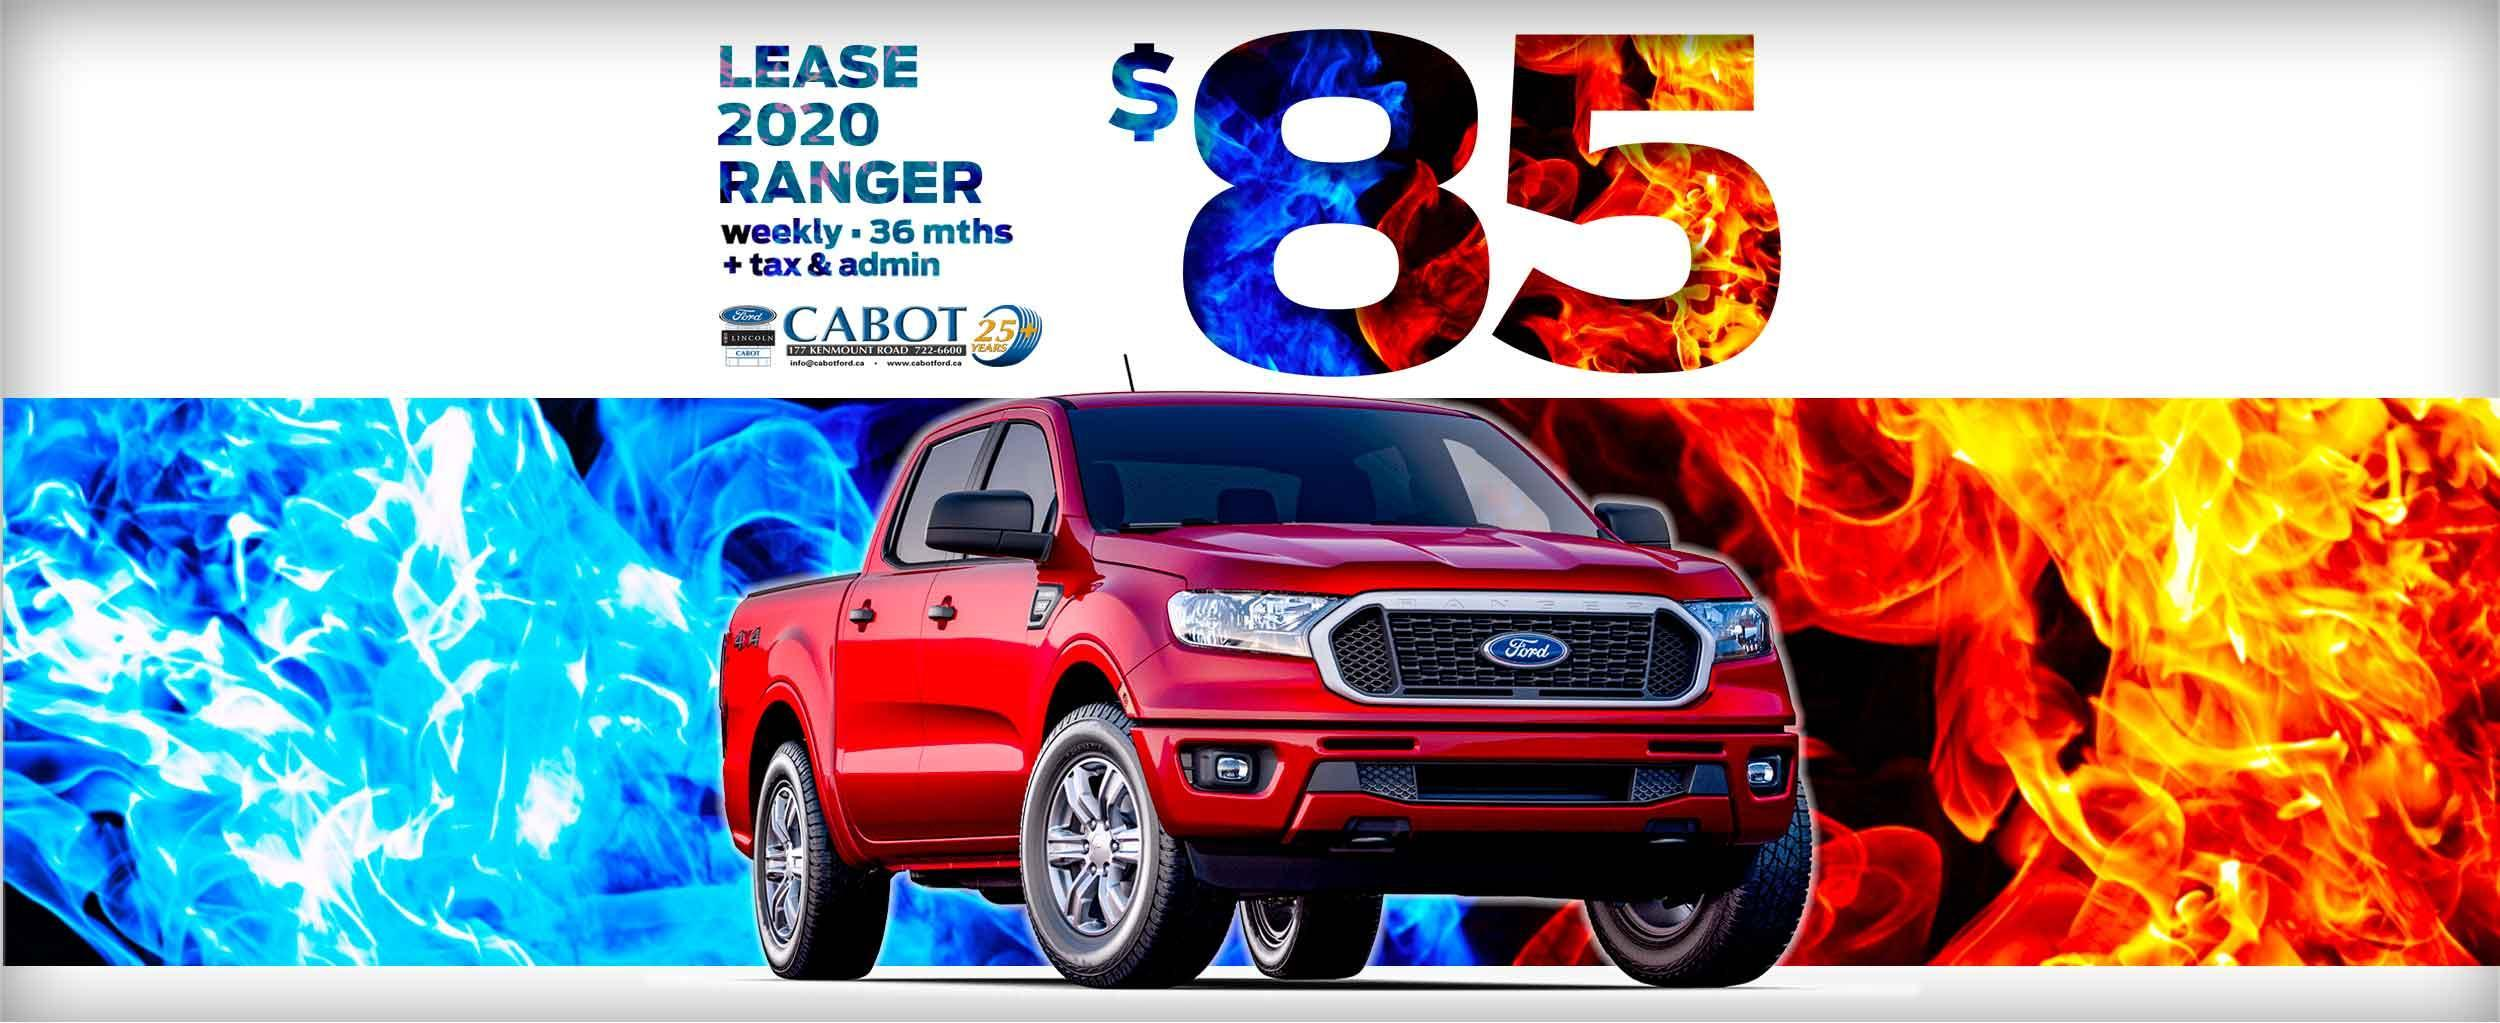 LEASE a 2020 FORD RANGER XLT SUPERCREW 4x4, for JUST $85 WEEKLY + tax and admin on a 36-month term!